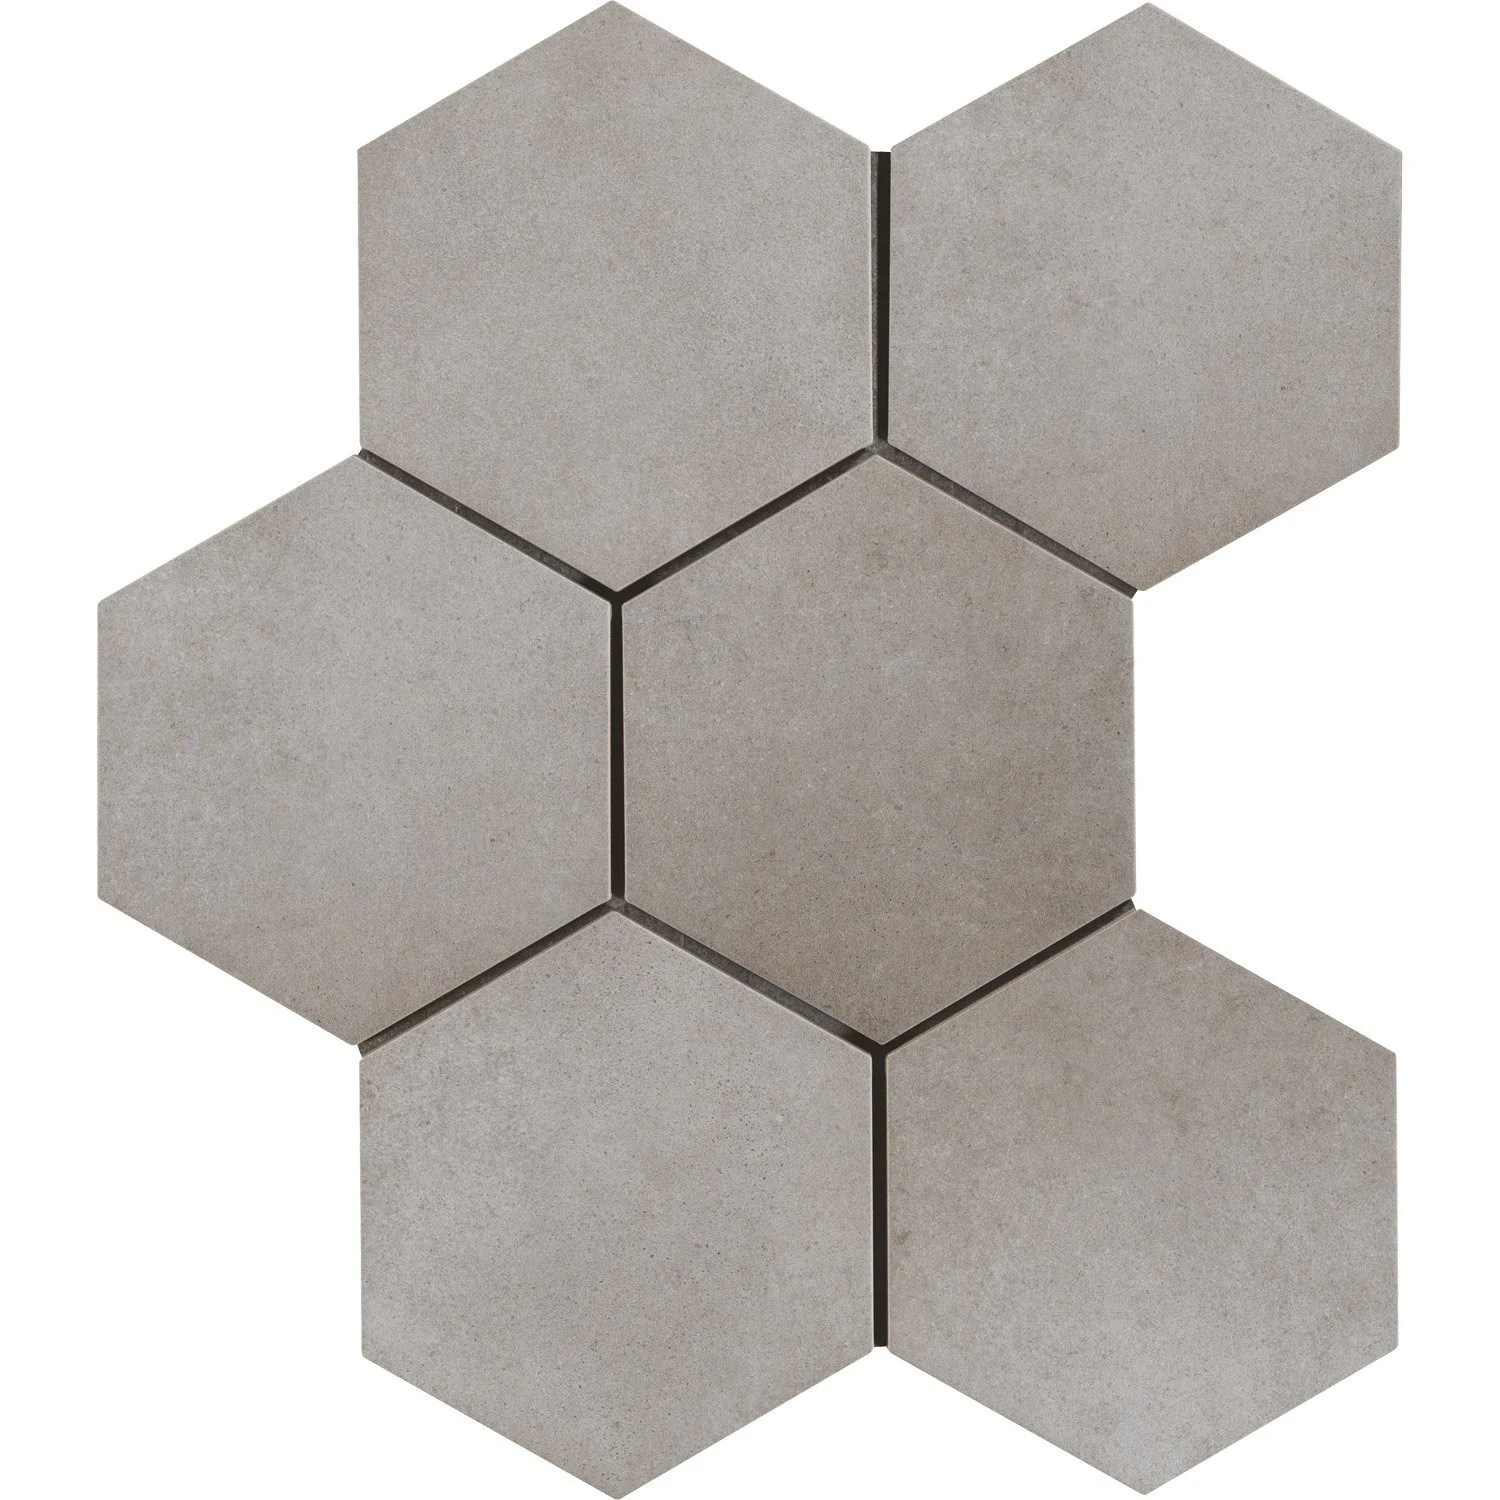 Carrelage Sols Carrelage Hexagonal Sol